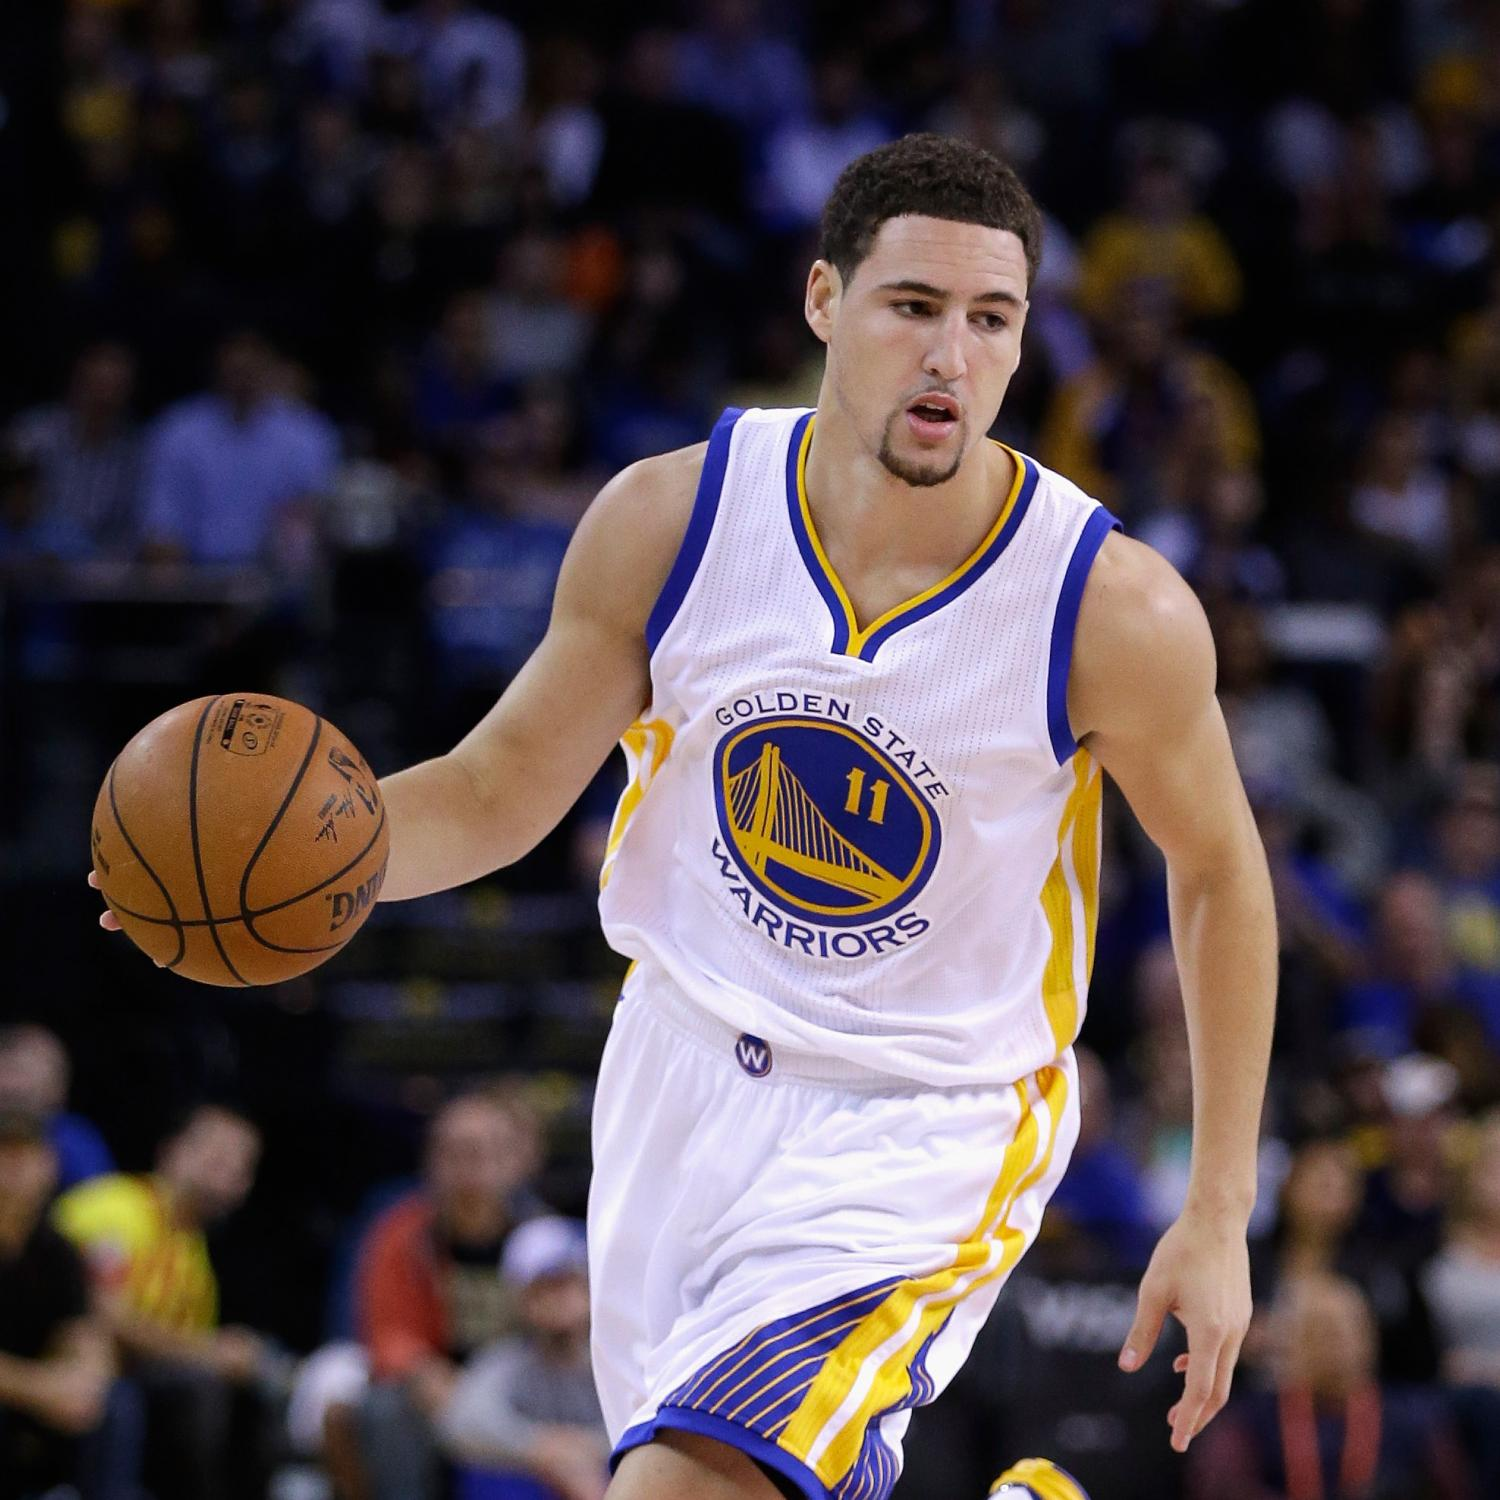 Handsome American basketball playerKlay Thompson playing in the court.